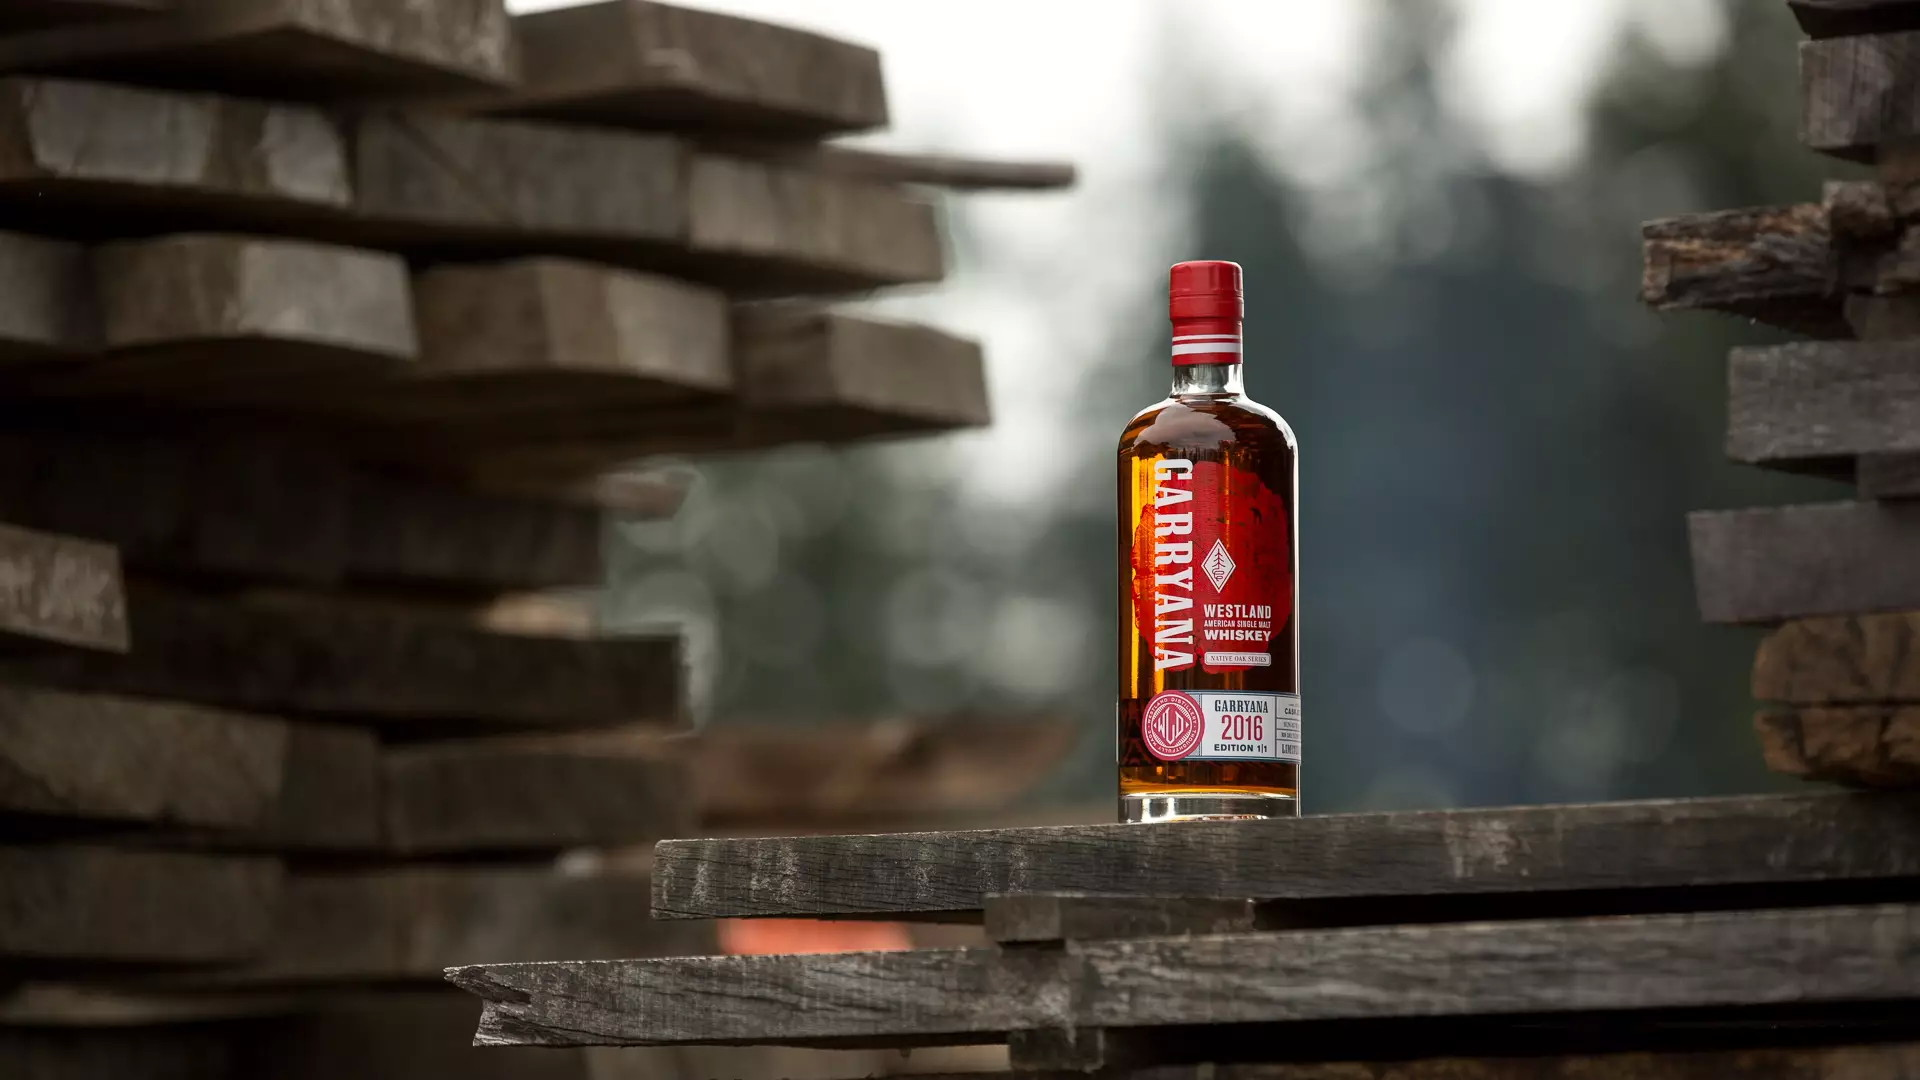 Westland Garryana - A Pioneering Northwest Whiskey